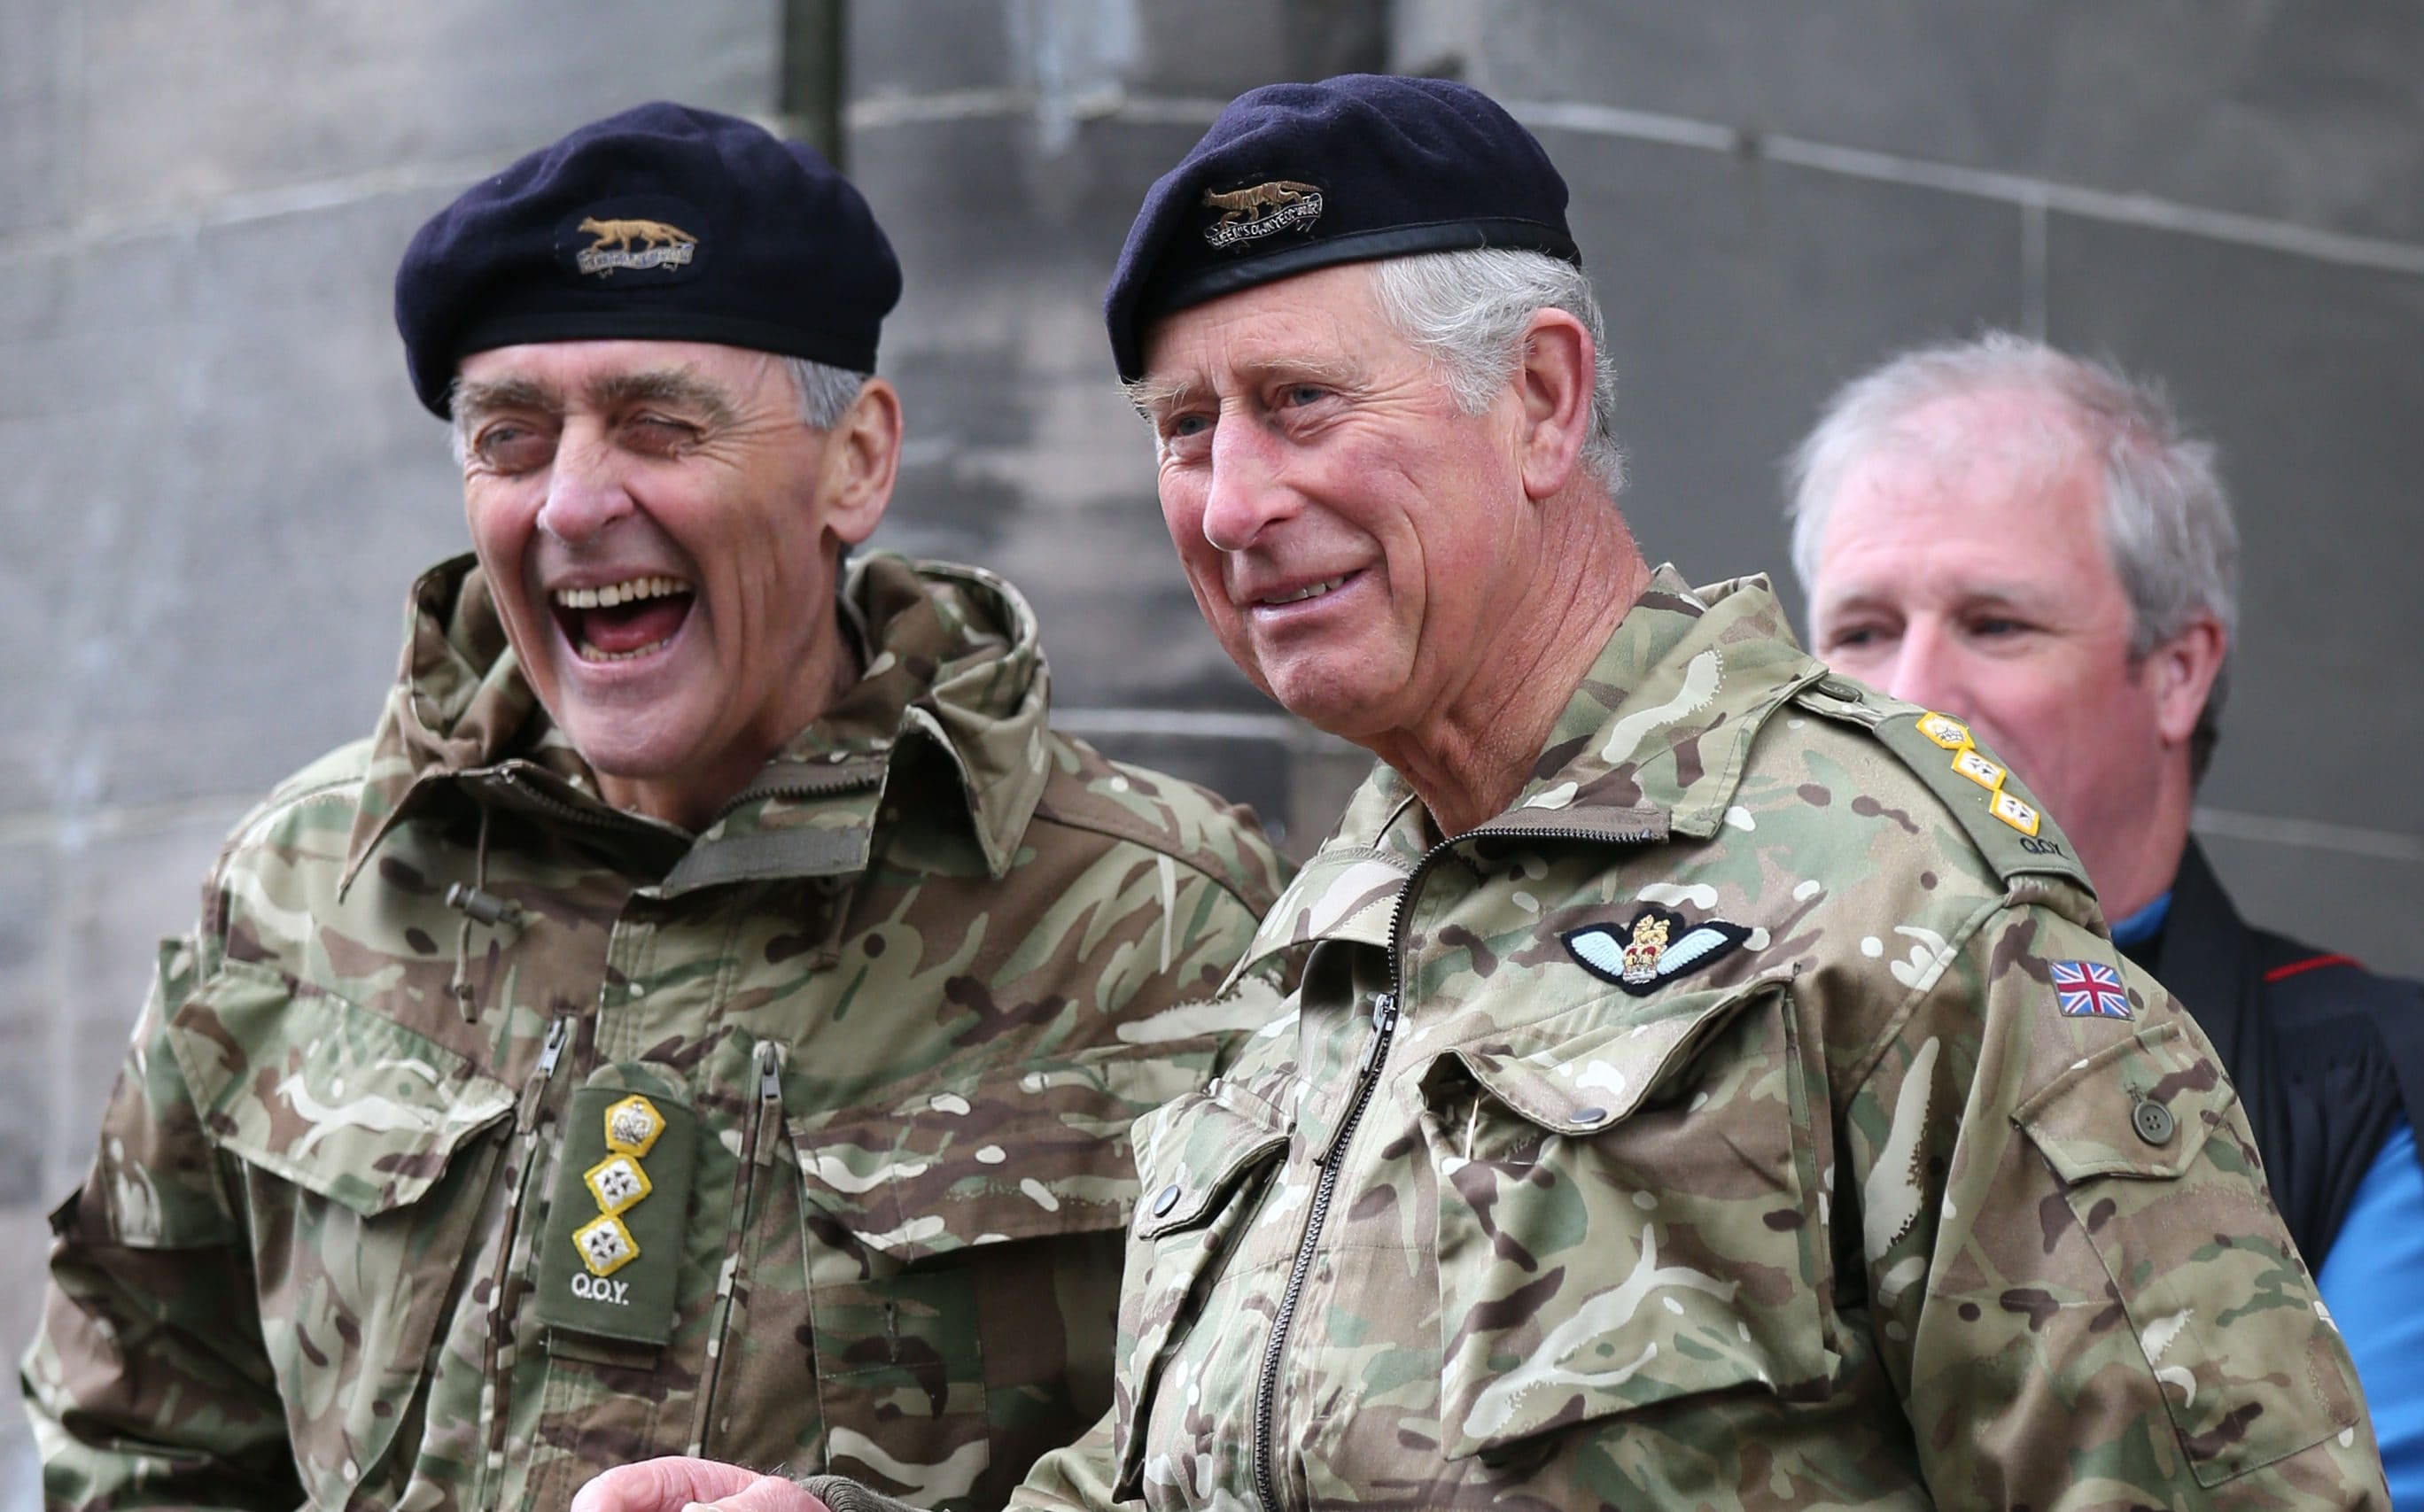 The 6th Duke of Westminster, who died in 2016, and his friend Prince Charles